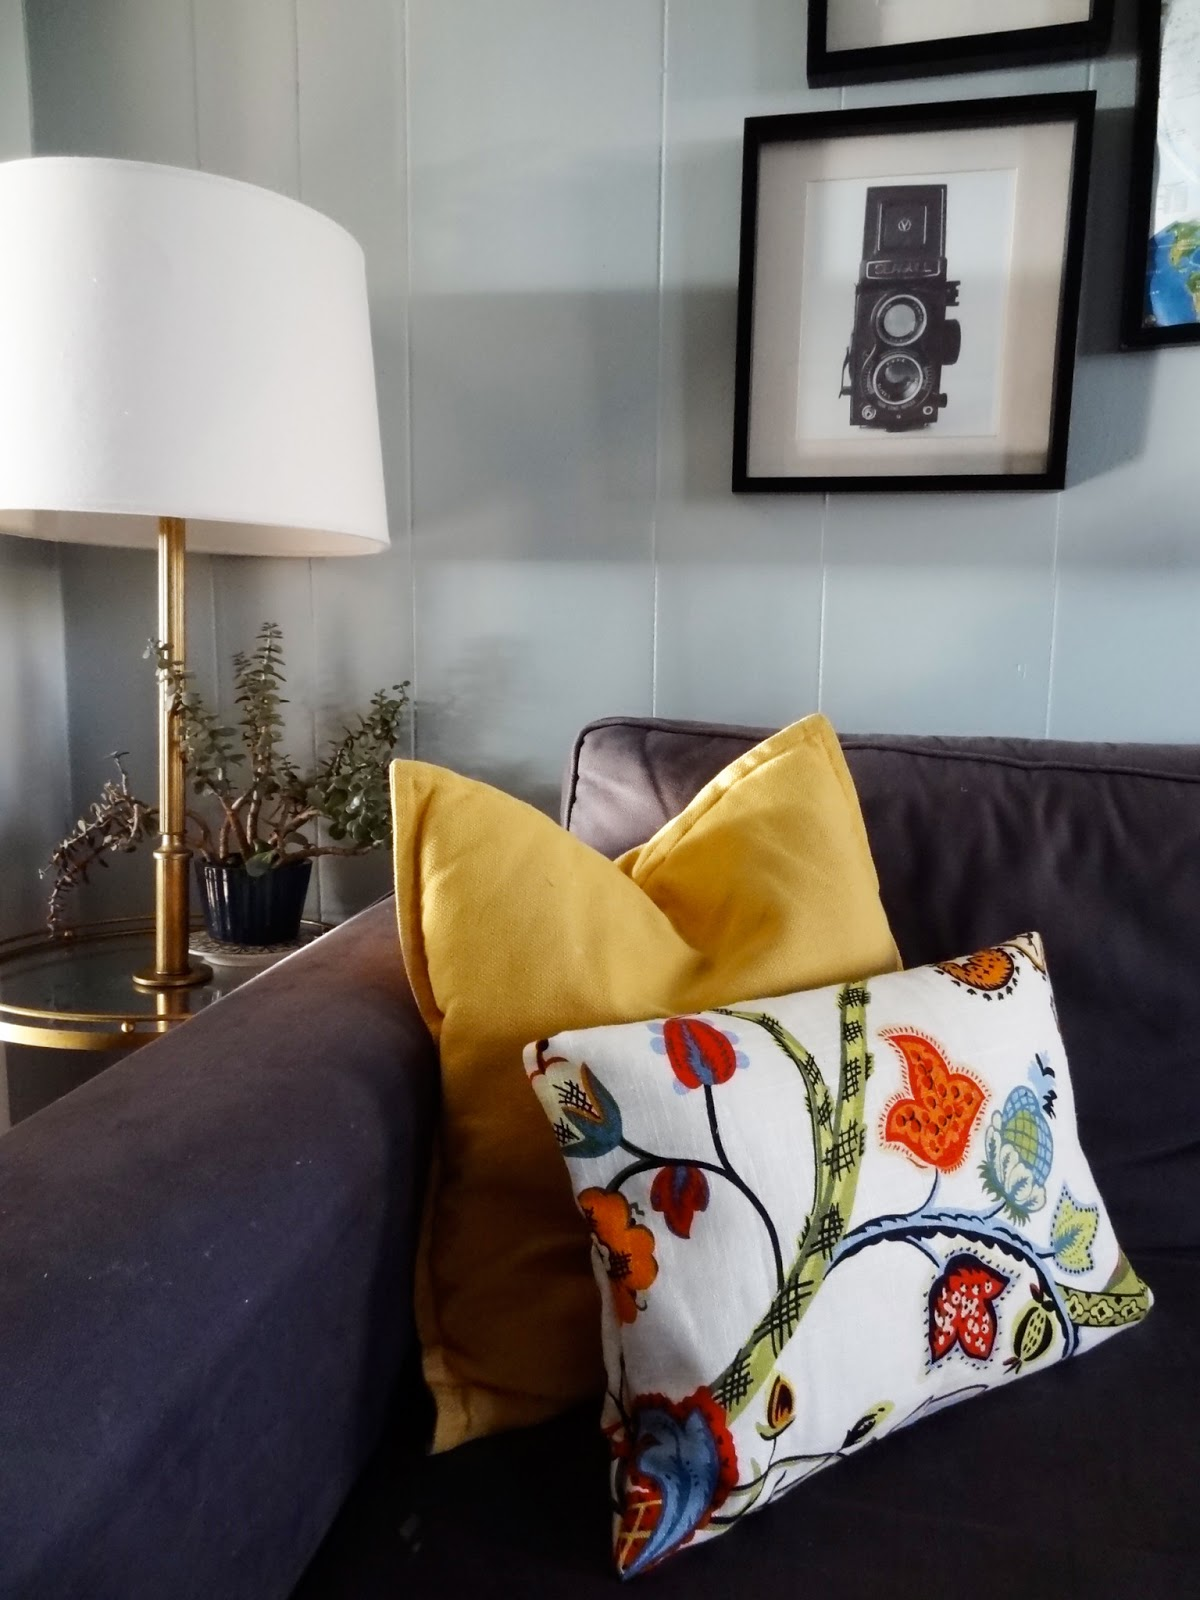 Home goods decorative pillow - These Envelope Style Pillow Covers Are The Perfect Use Of Leftover Fabric Giving My Simple Navy Sofa A Boost Of Color And Pattern